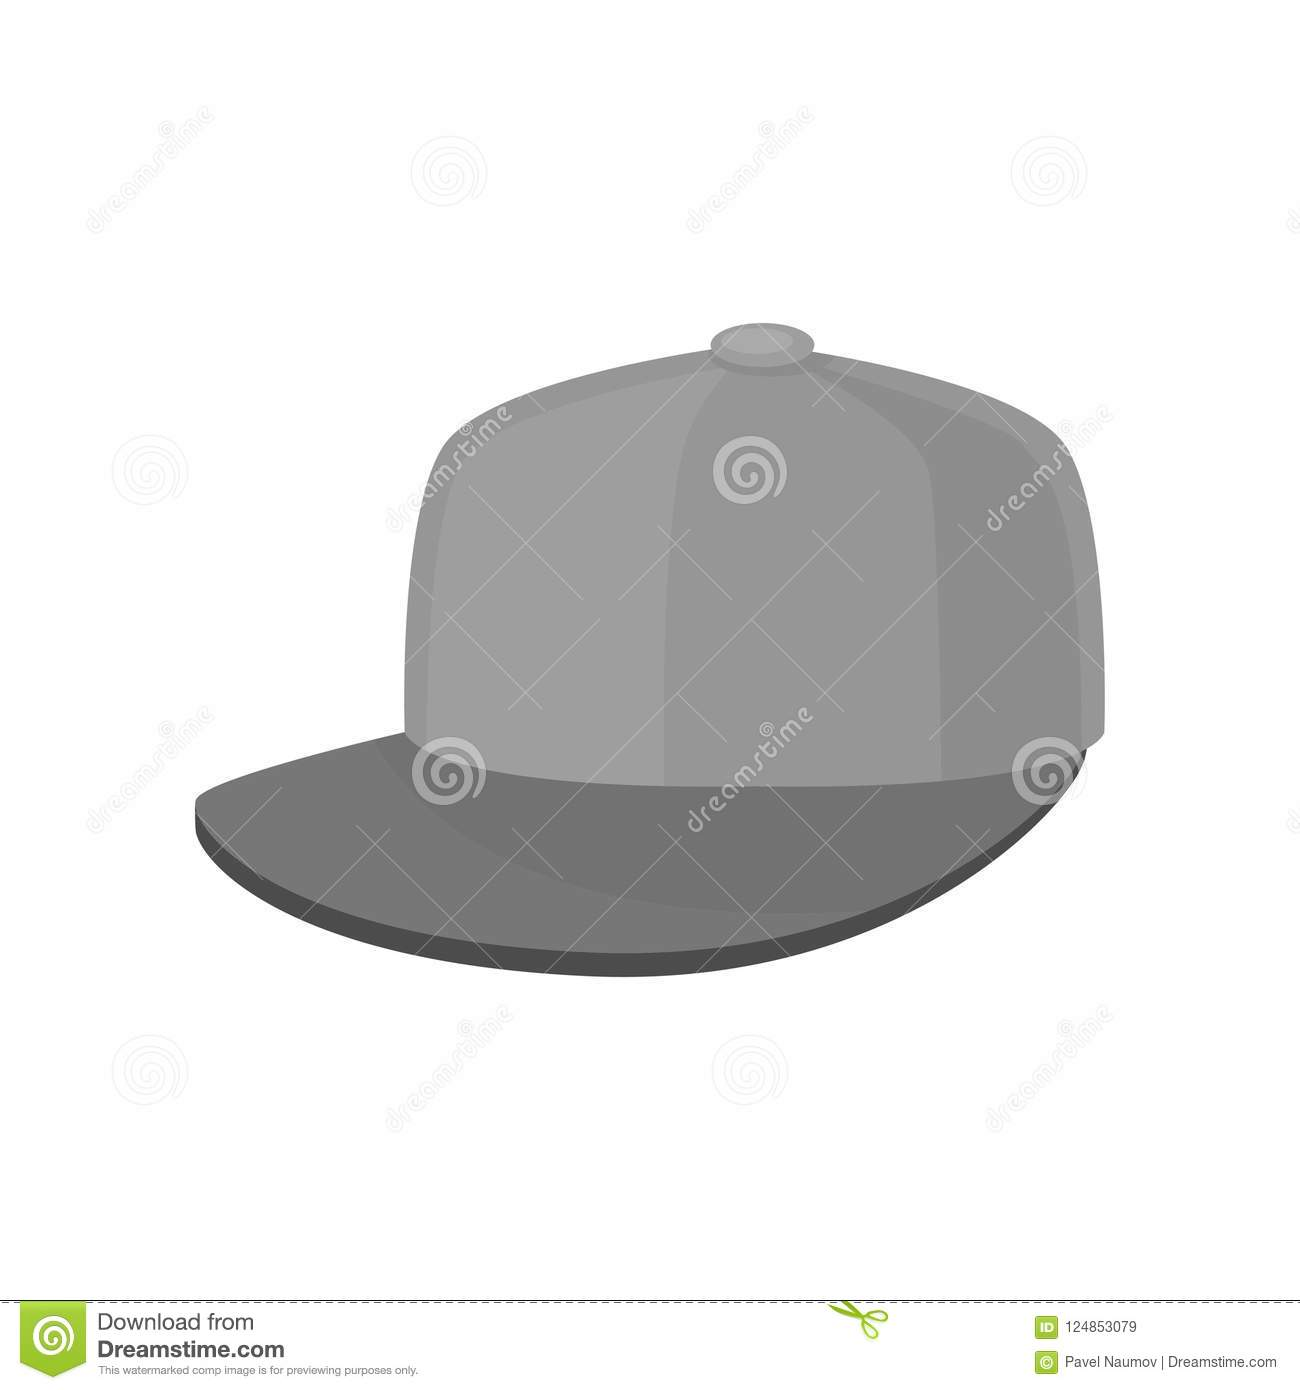 Flat vector icon of gray baseball cap. Hat with hard sun visor. Unisex  headwear 68a3a26cce2